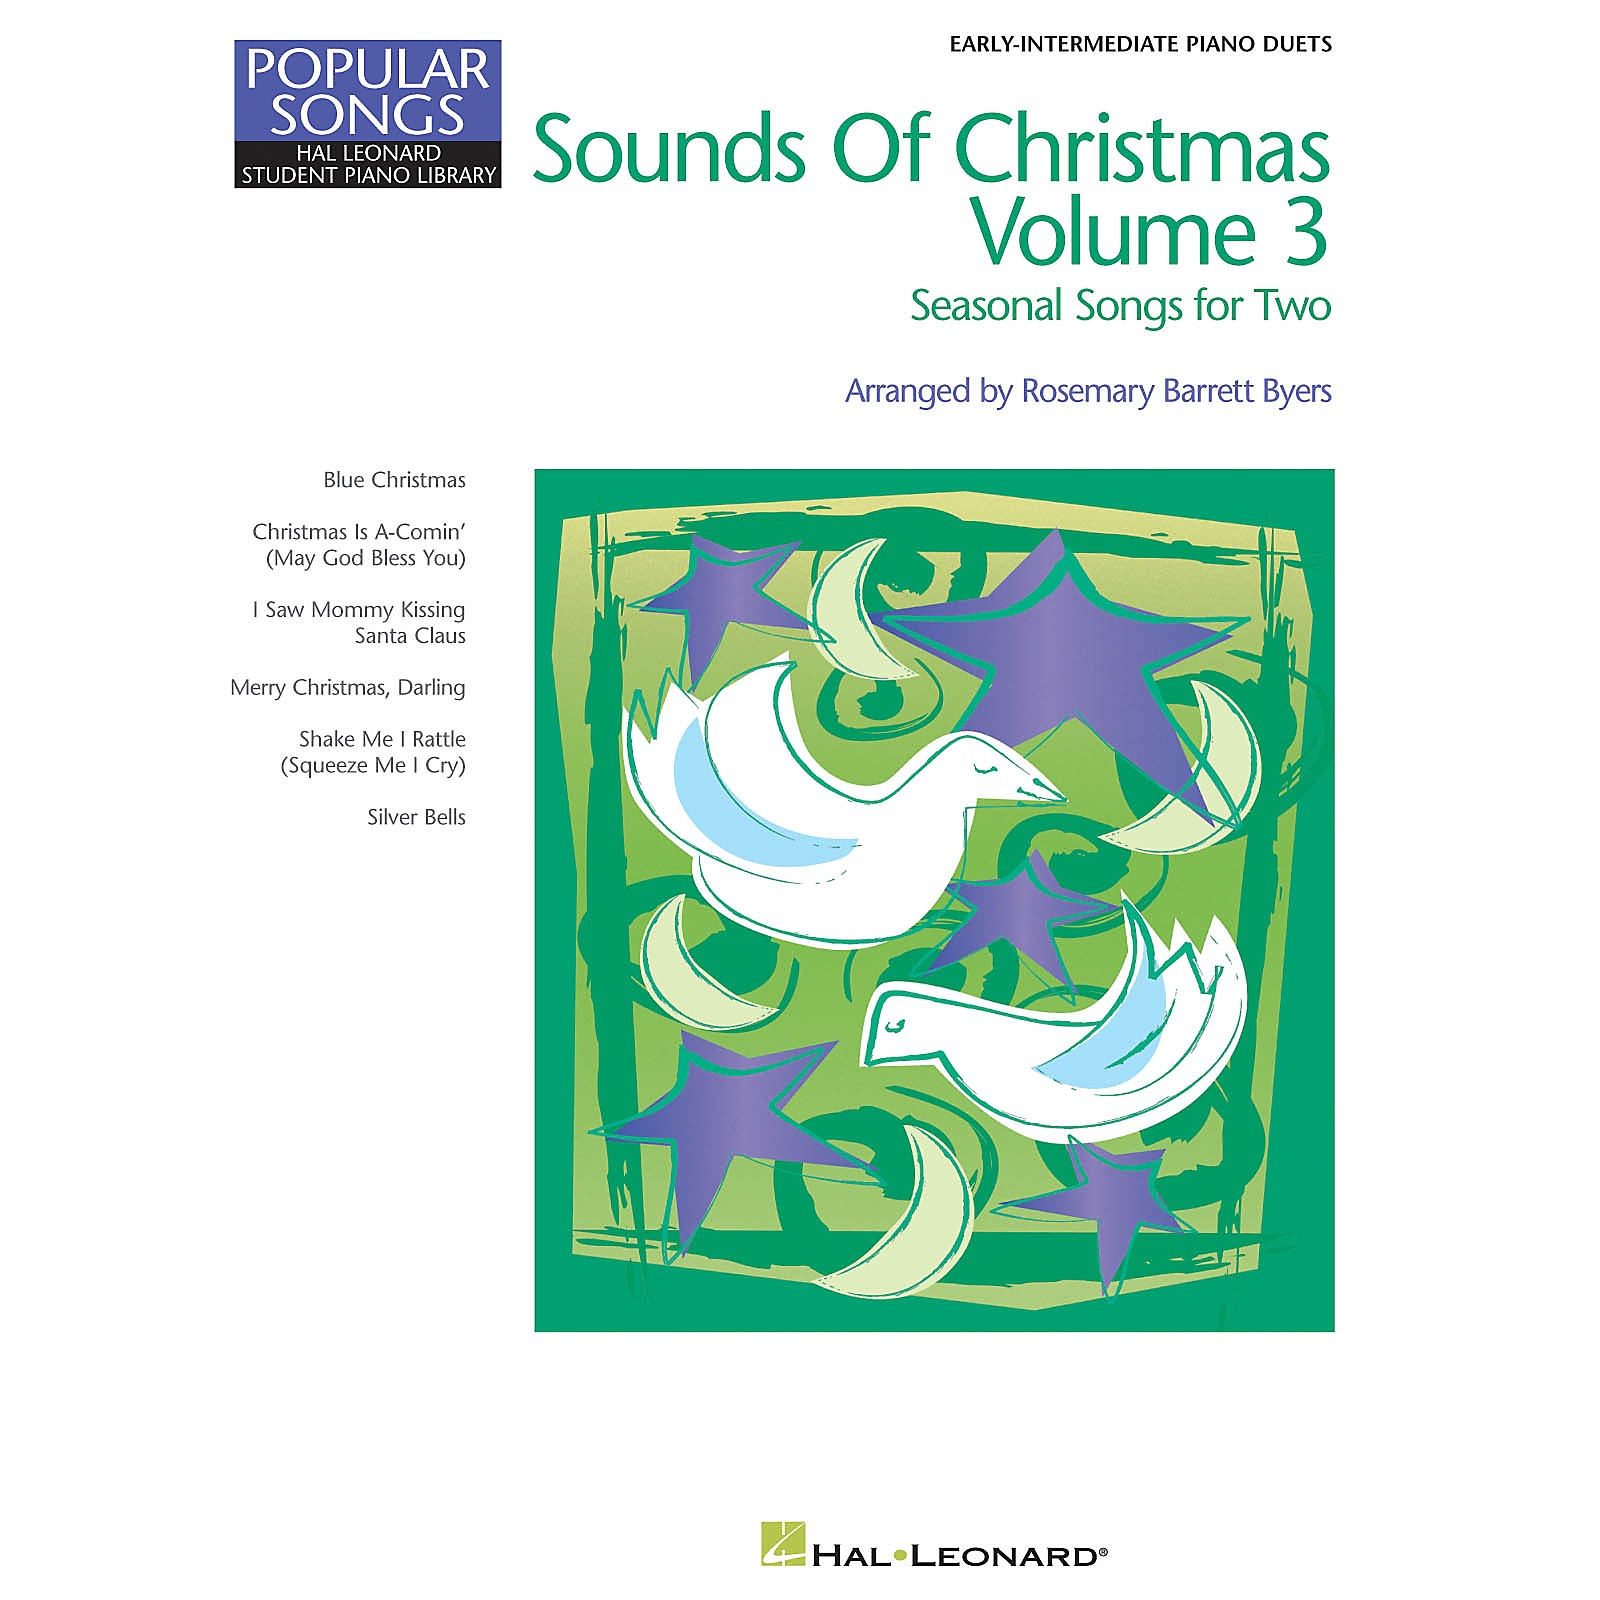 Hal Leonard Sounds of Christmas Volume 3 Piano Library Series Book (Level Late Elem)